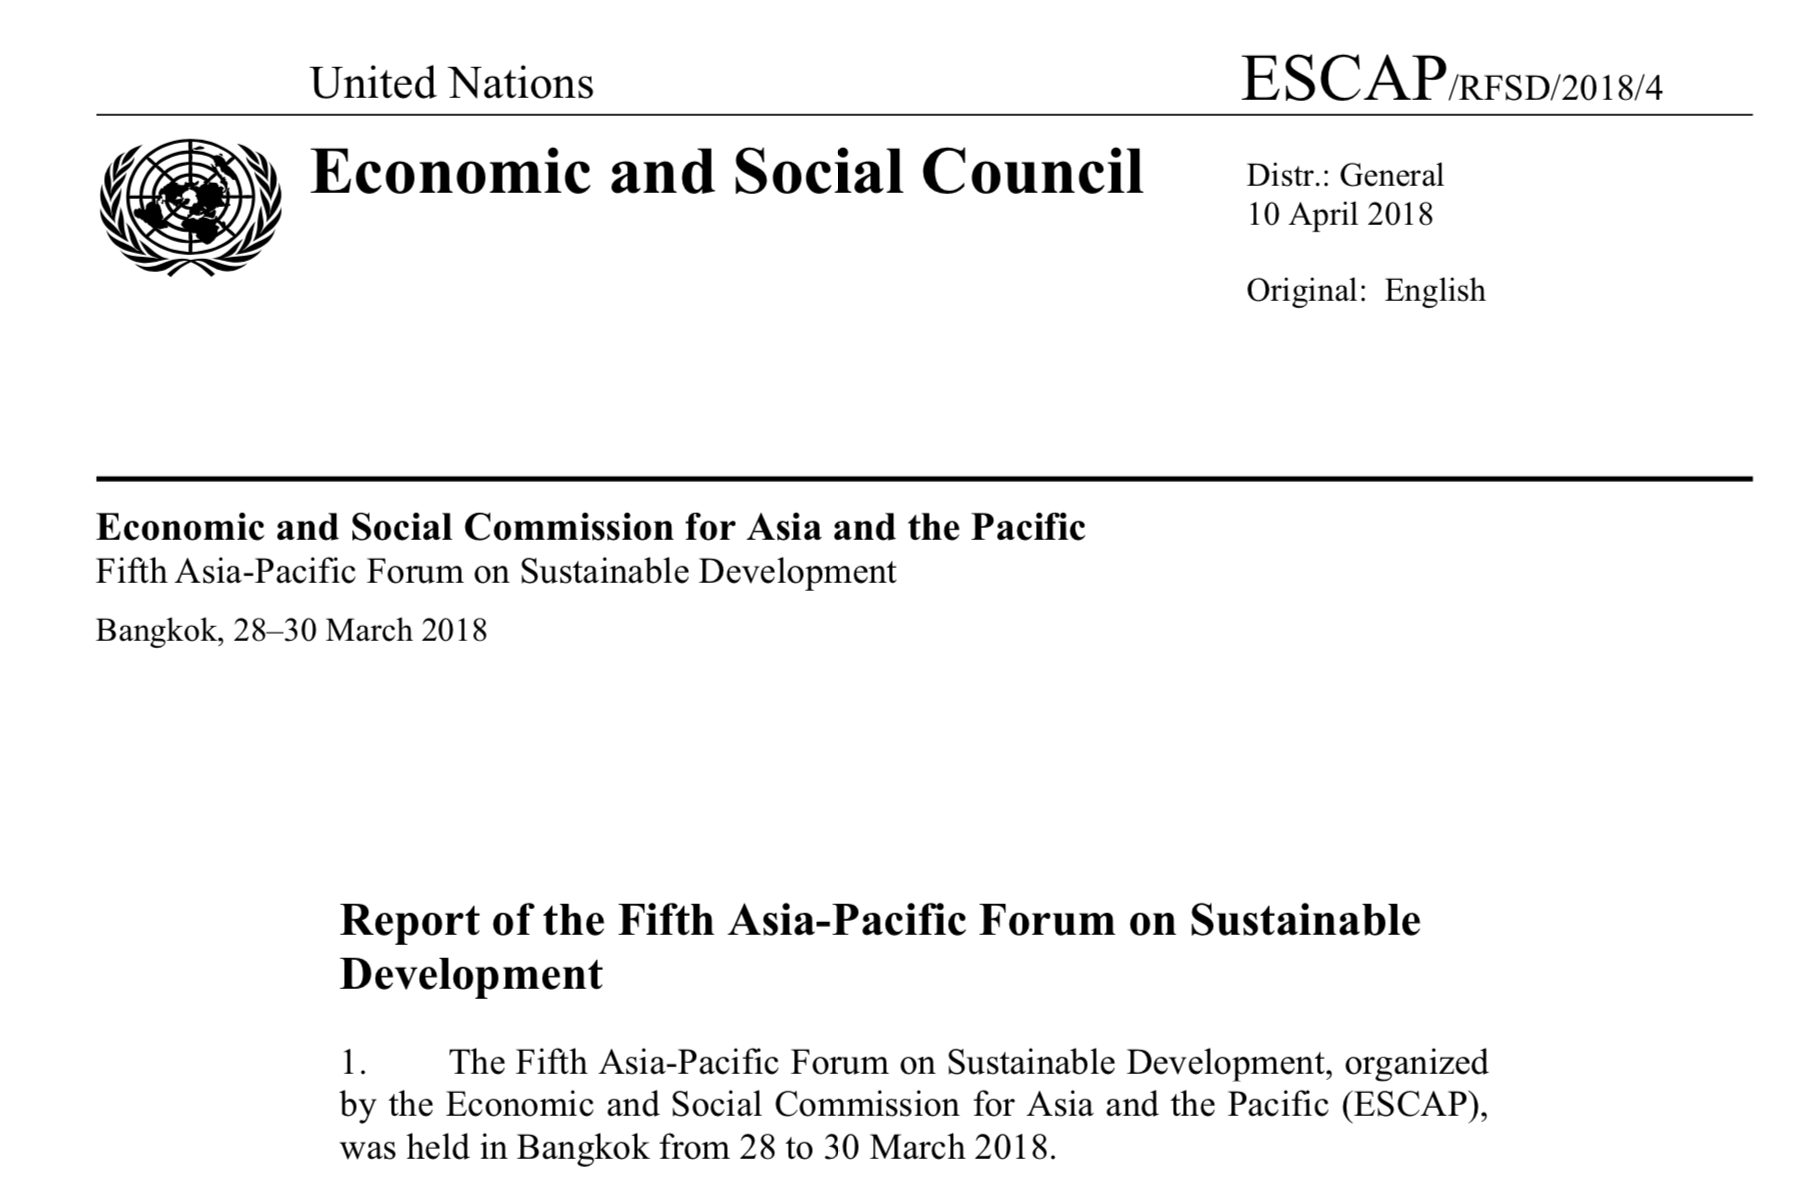 Report of the Fifth Asia-Pacific Forum on Sustainable Development